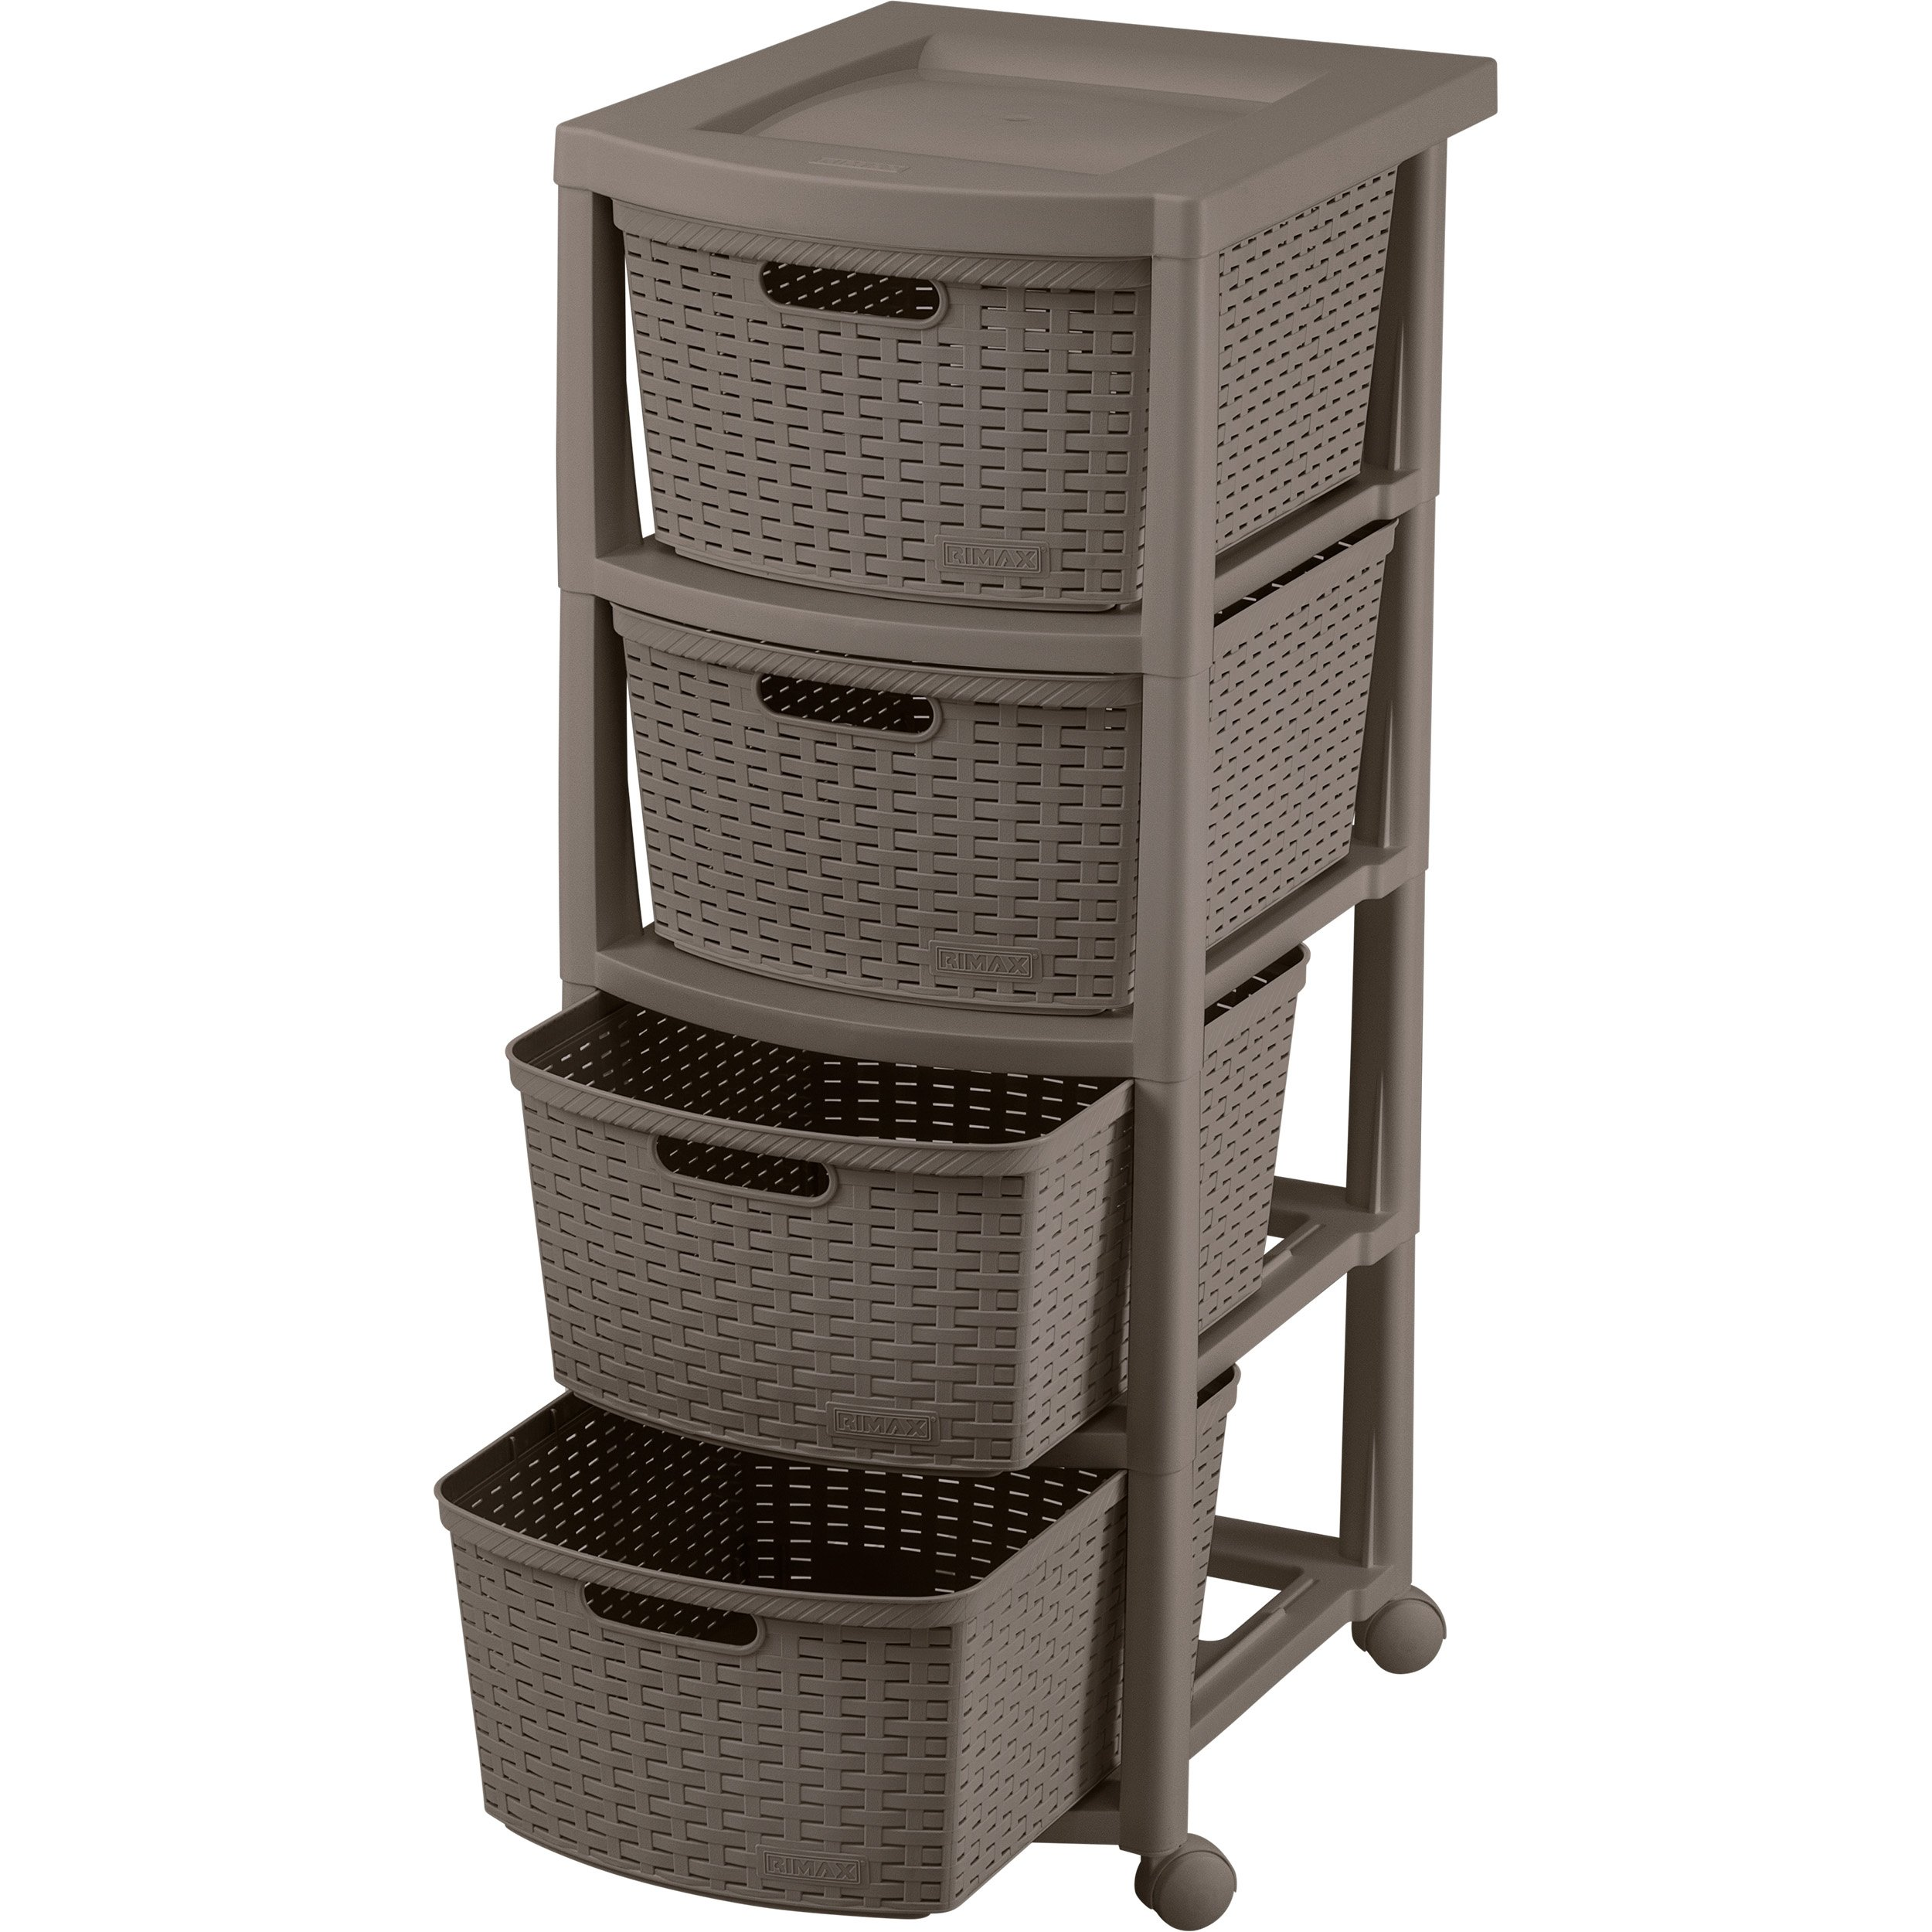 Rimax Mobile 10433 Four Drawer Rolling Cart in Mocca